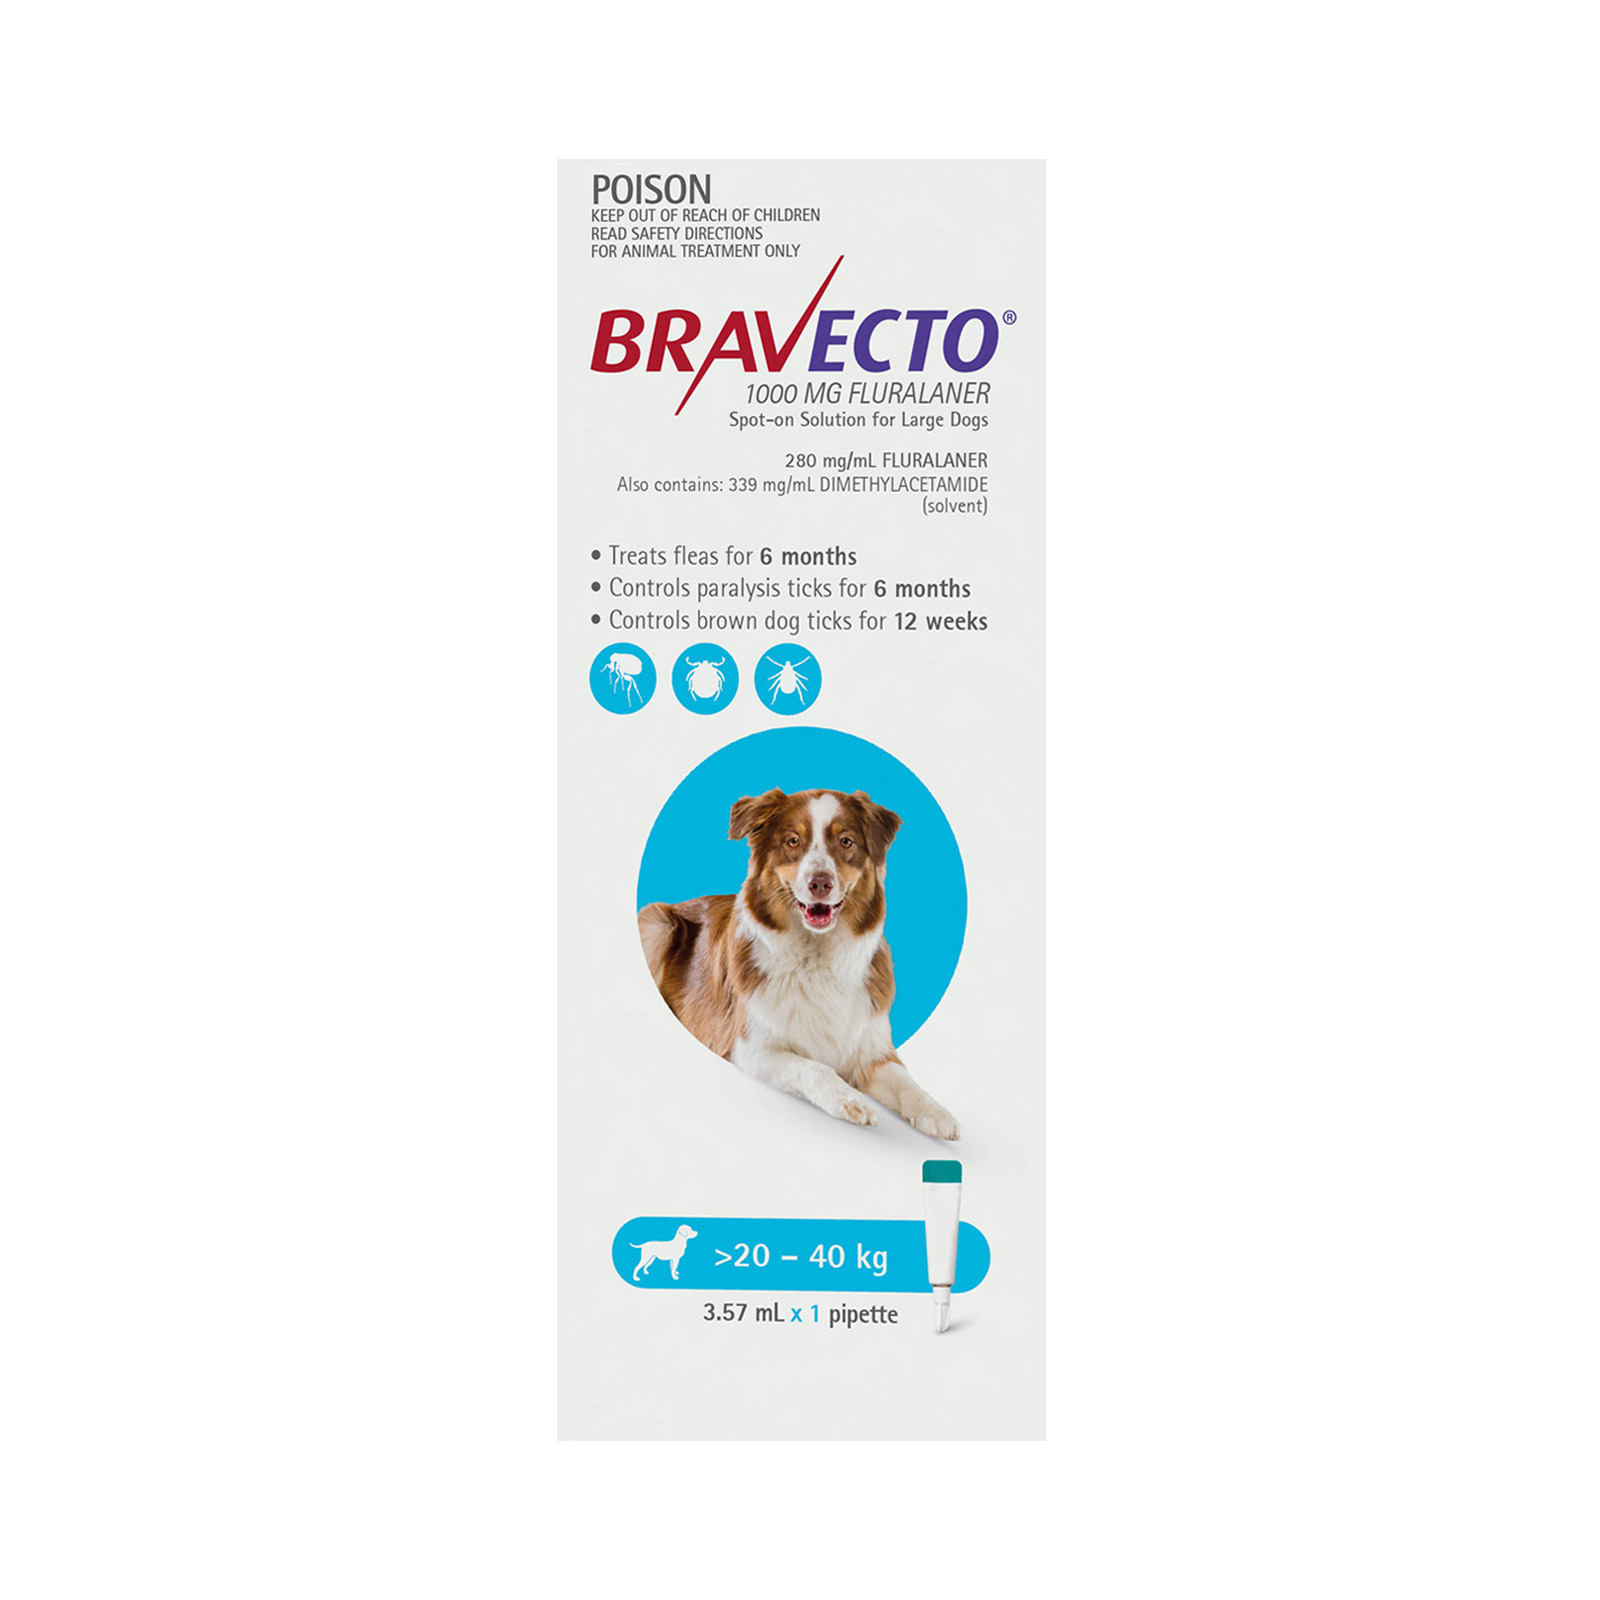 Bravecto Spot On for Large Dogs (20 - 40 kg) Aqua